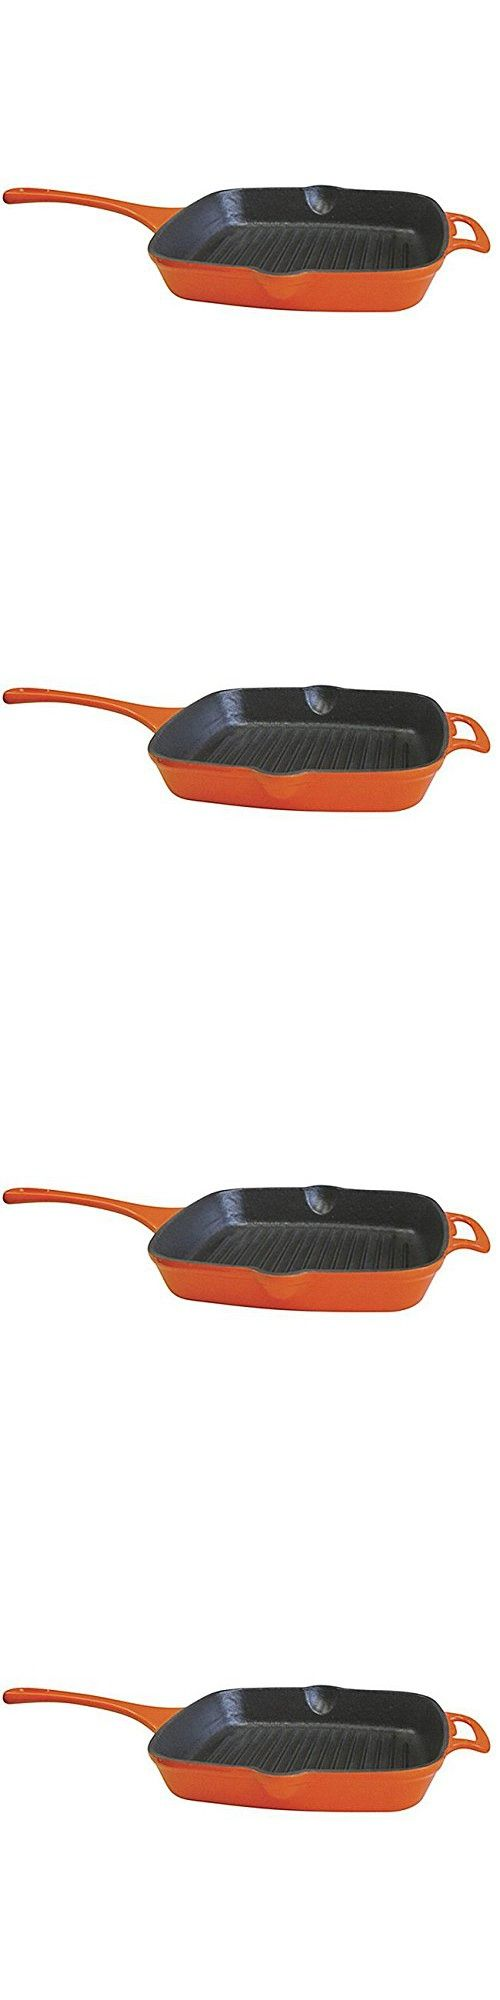 Single Piece Bright Orange Cast-Iron 10.2-Inch Grill, Cast Iron Metal Porcelain Material, Elegant Design, Heavy Duty Handle, Eliminating Hot Spot, Enamel Cookware Cleaner Hand Wash Enamel Coating